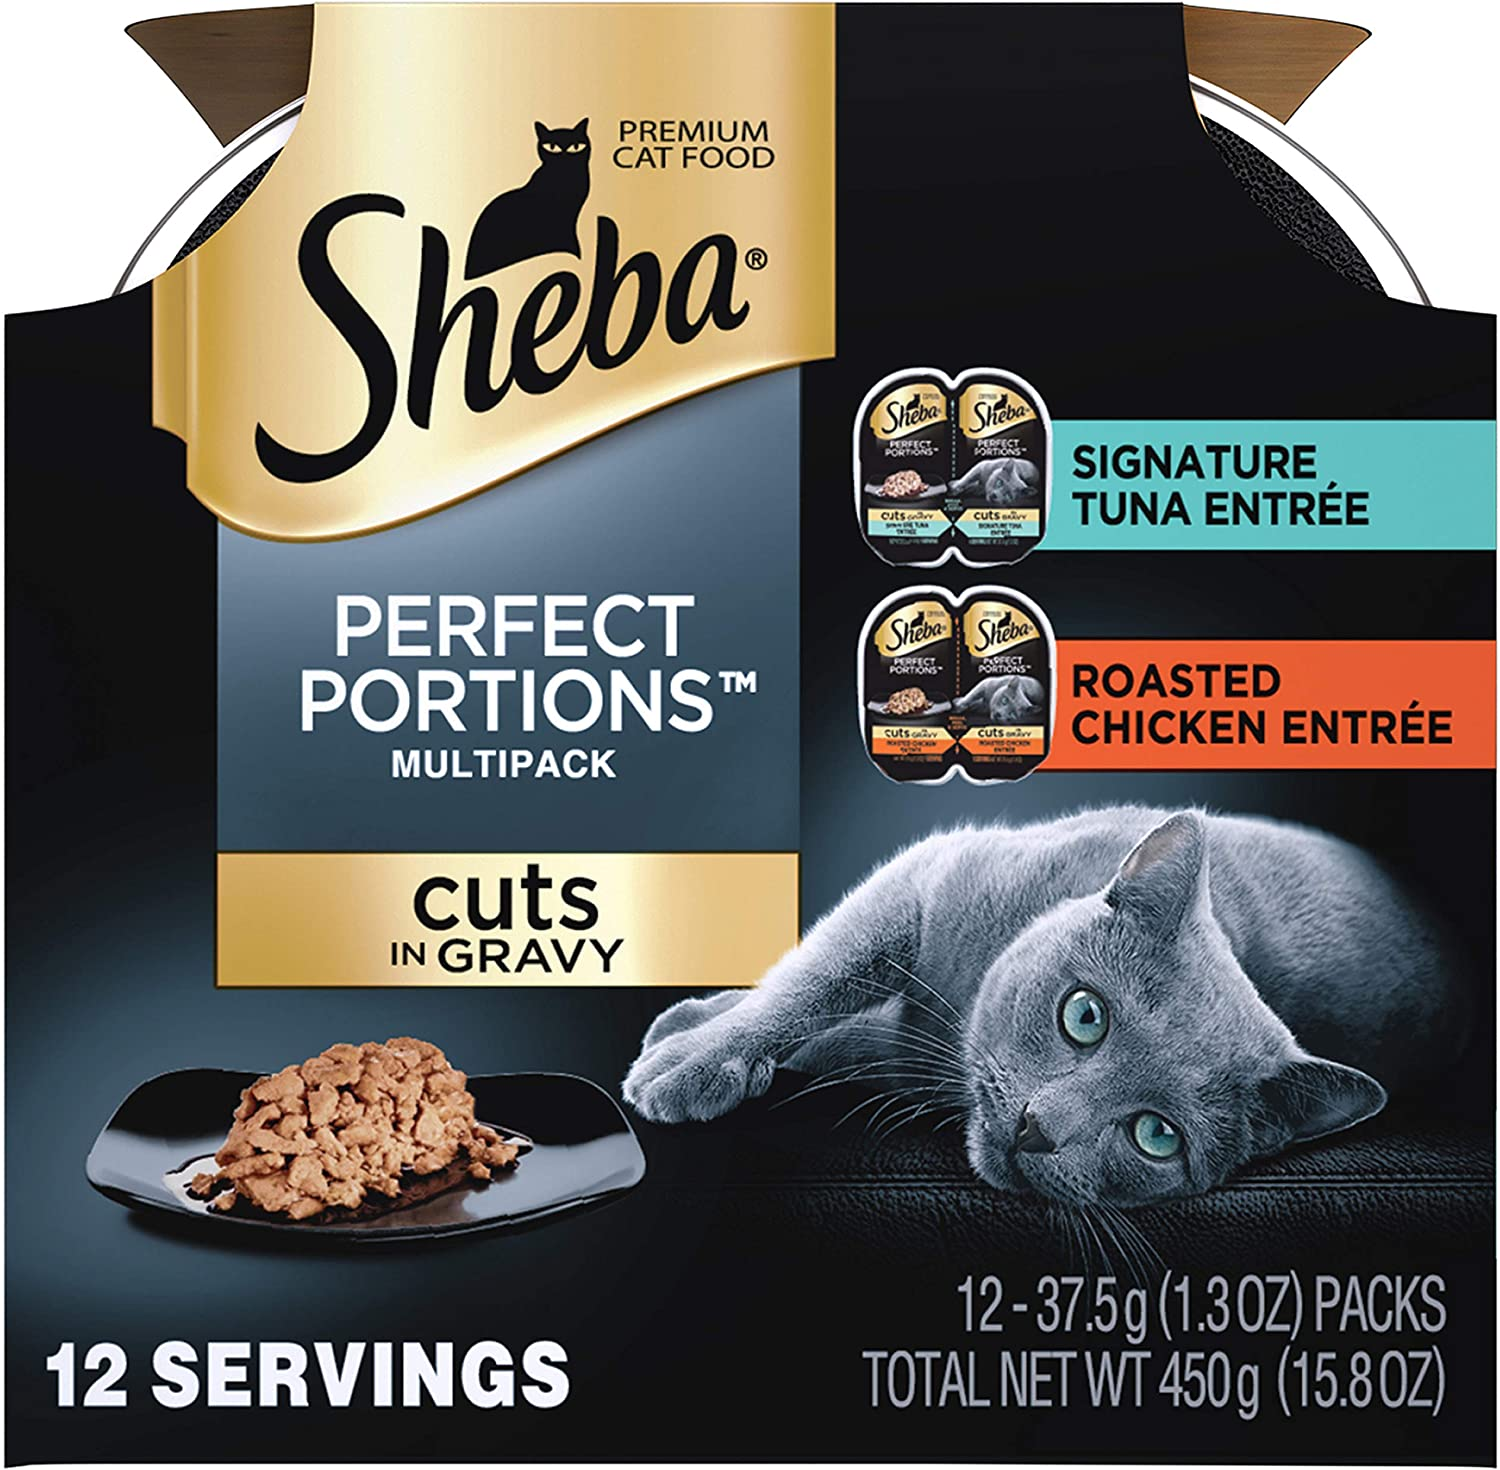 Sheba Perfect Portions Multipack Cuts in Gravy, Signature Tuna Entree, Roasted Chicken Entree (12- Individual Serving) (3-Double Trays of Each)